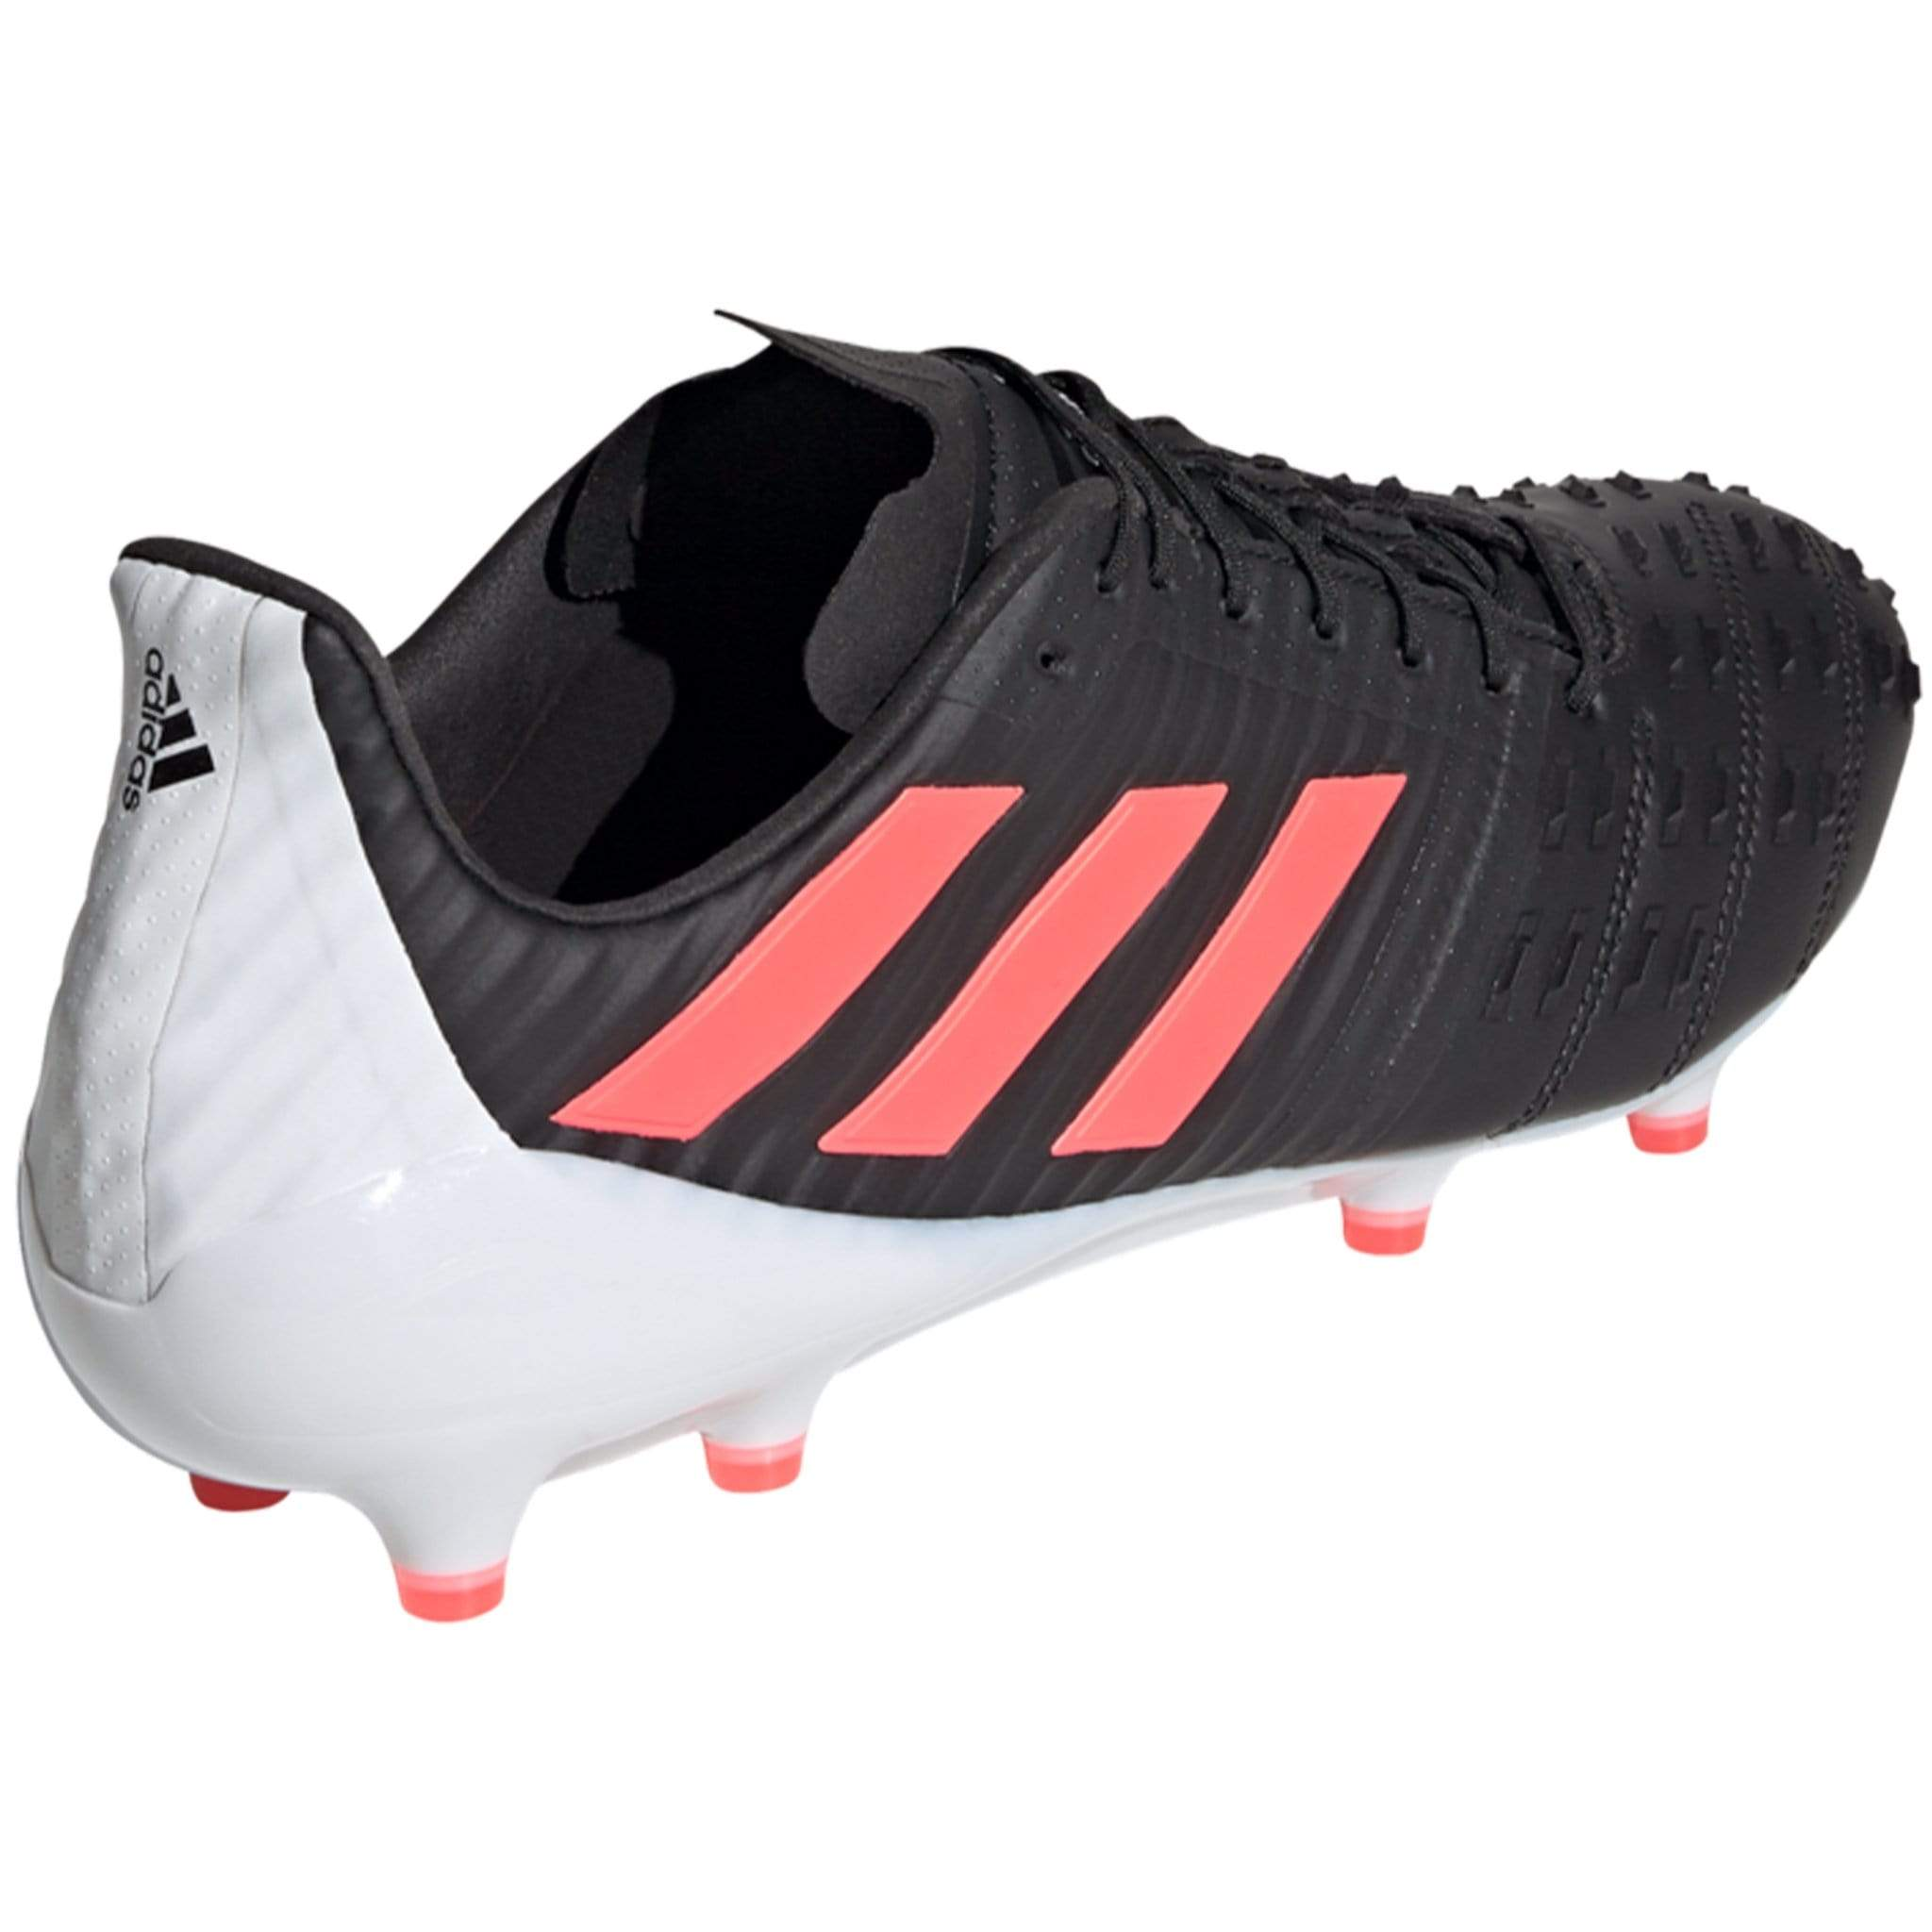 White Back of Rugby Shoe with Black Adidas Logo